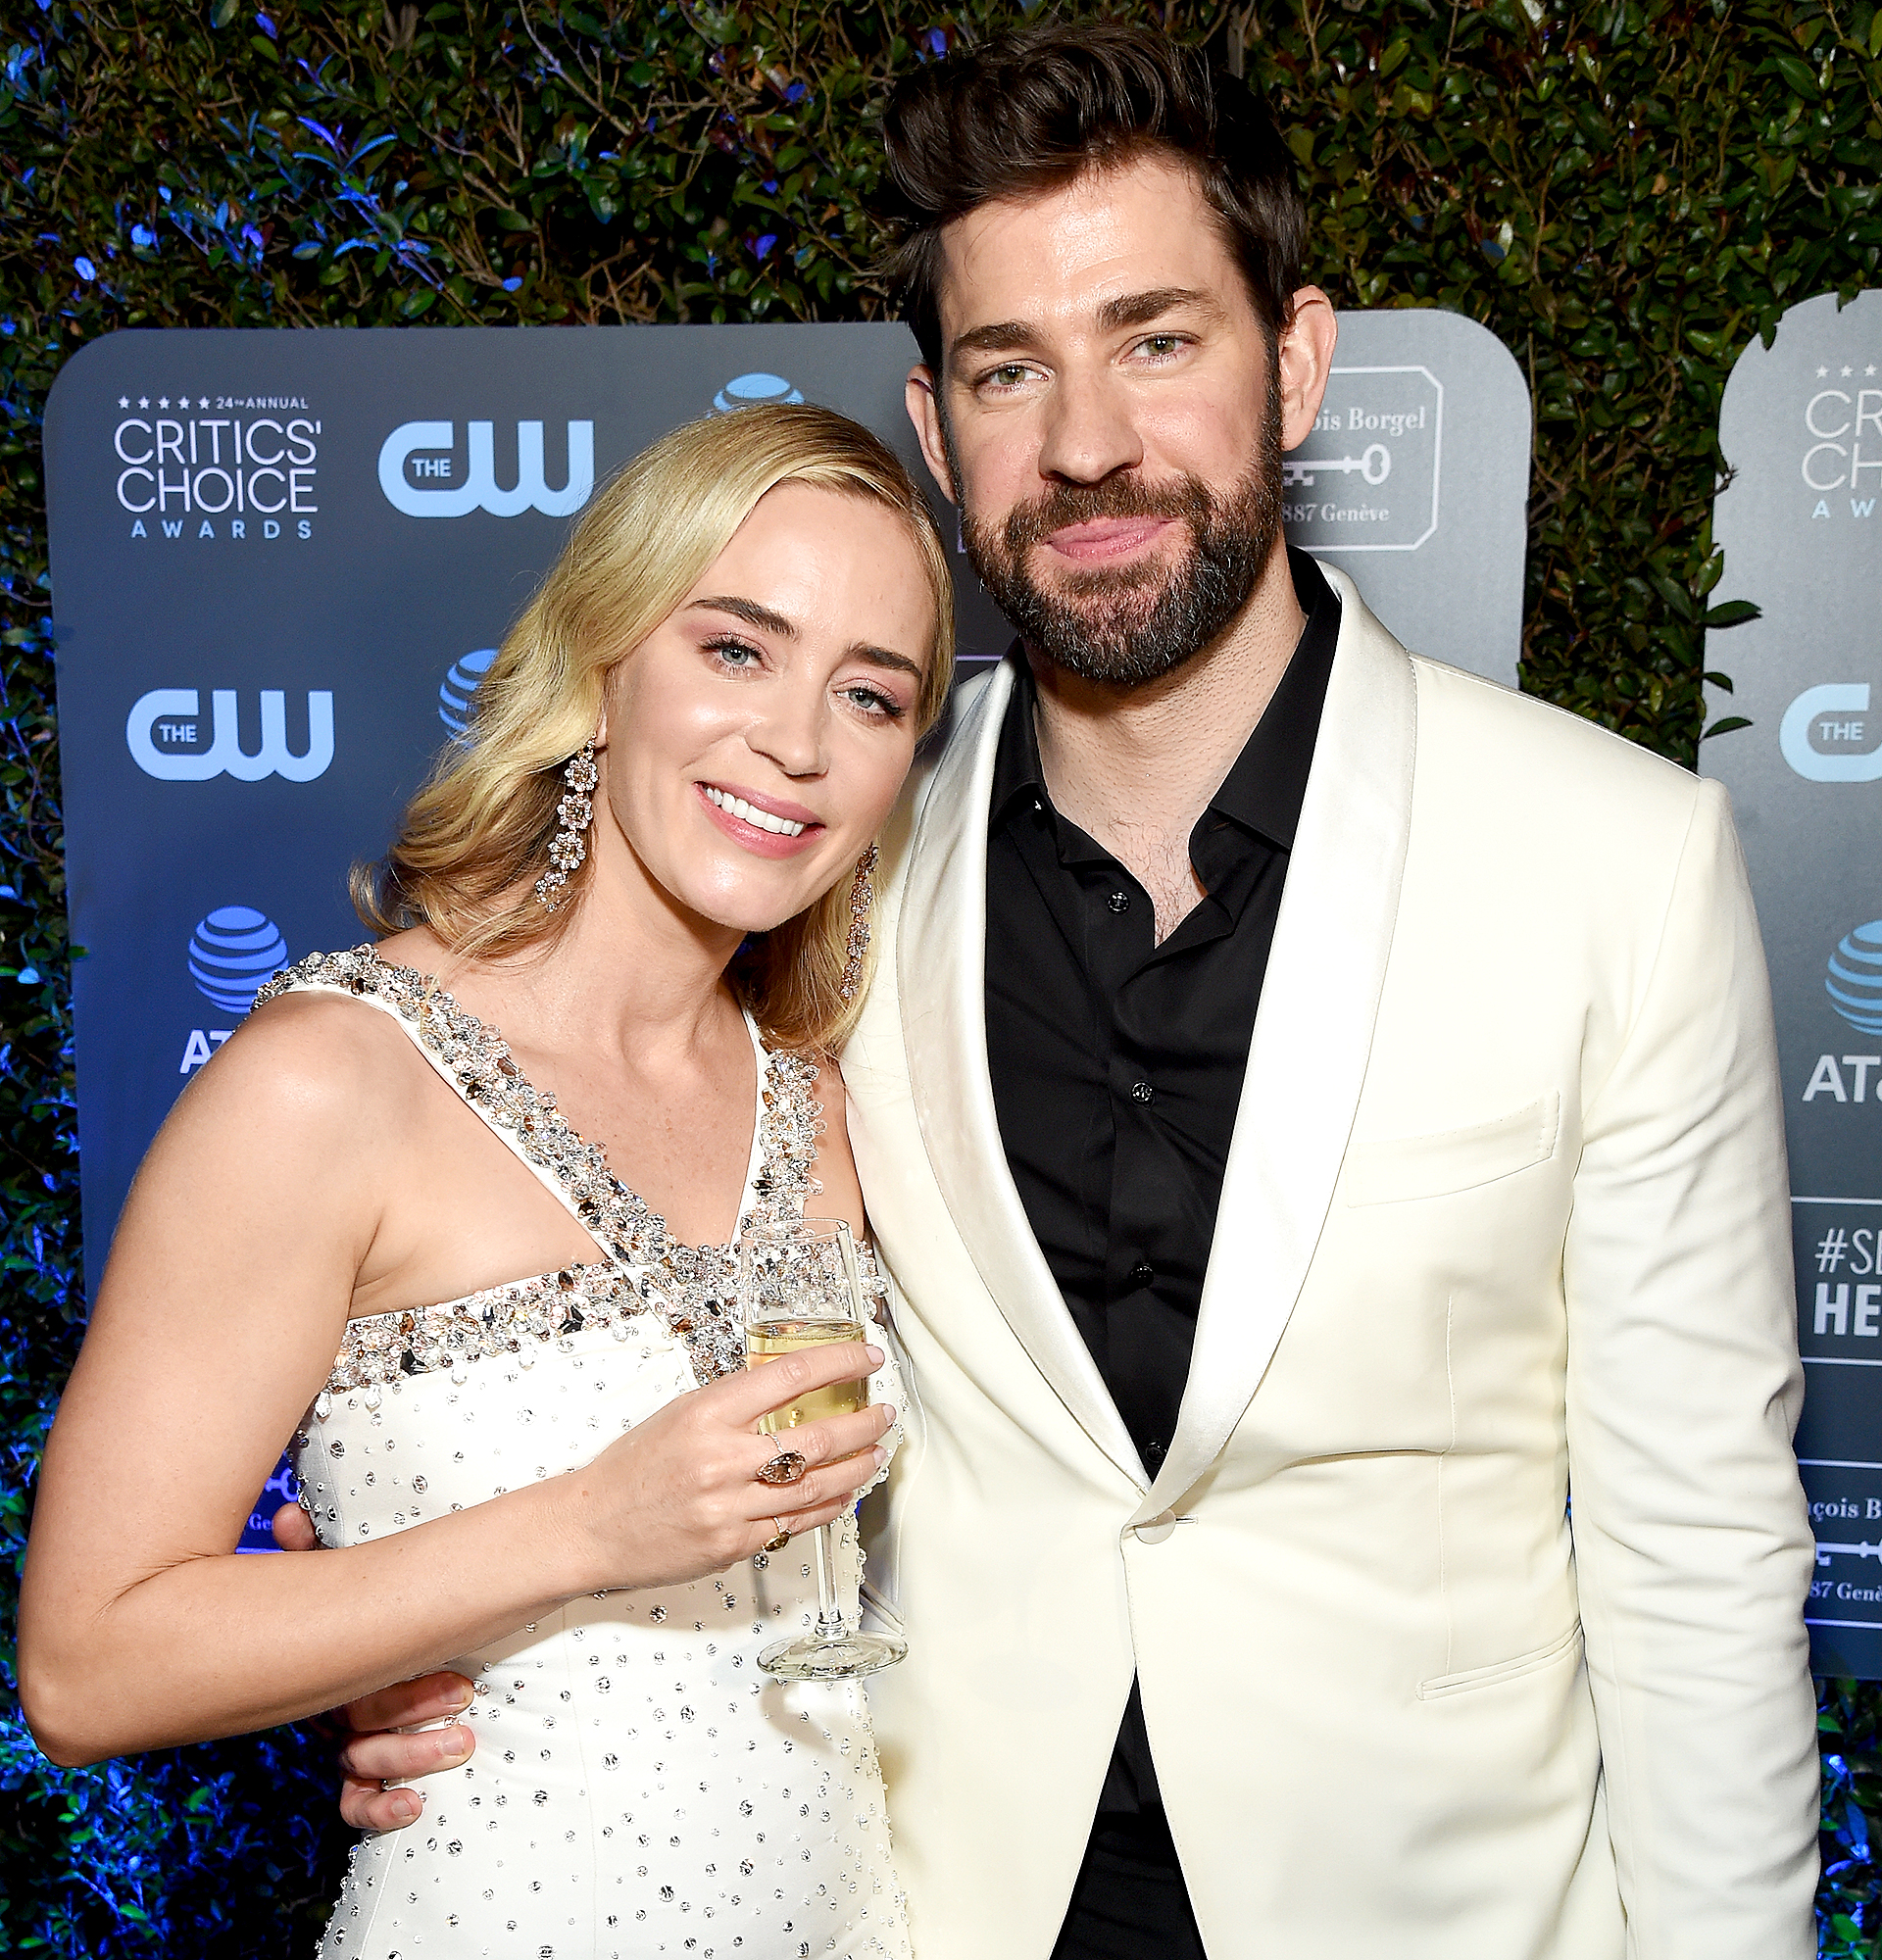 """John-Krasinski-and-Emily-Blunt-love-quotes - """"I think a lot of people cry watching this film. People almost talk about it like, 'John Krasinski cried watching this film,'"""" Blunt told Us in January 2019 about her role in Mary Poppins Returns . """"But it was wonderful to see him that emotional about it, and I think he himself, amongst other people I've spoken to, have said they don't know why they are so emotional about it."""""""